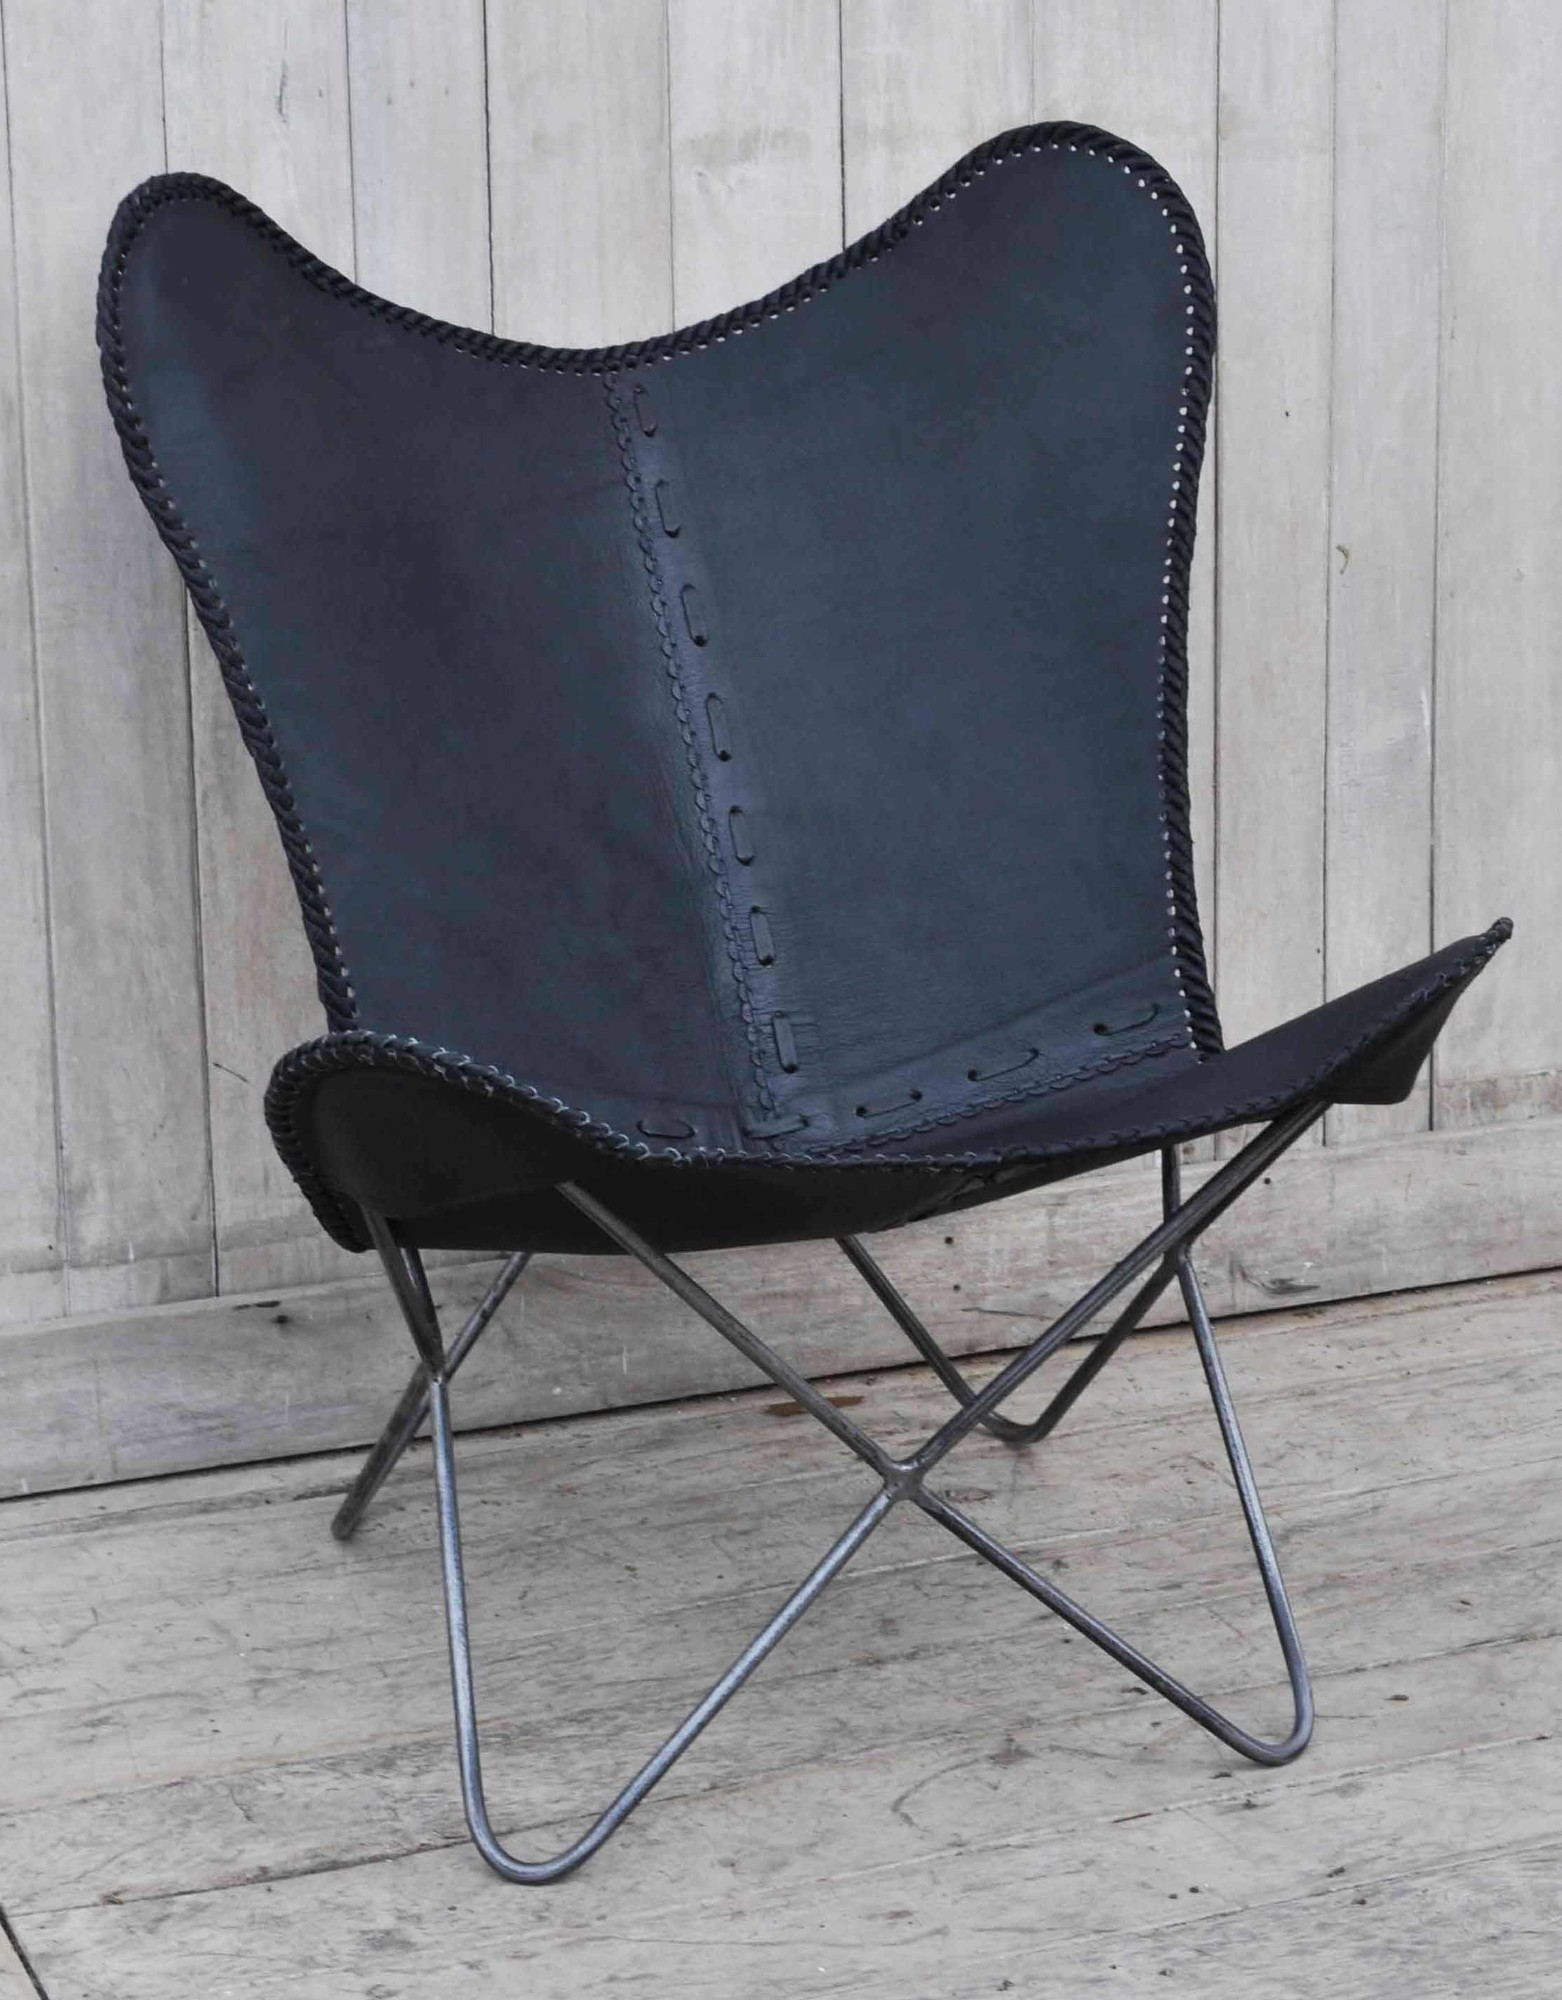 indigo usa chair butterfly previous products made in image next